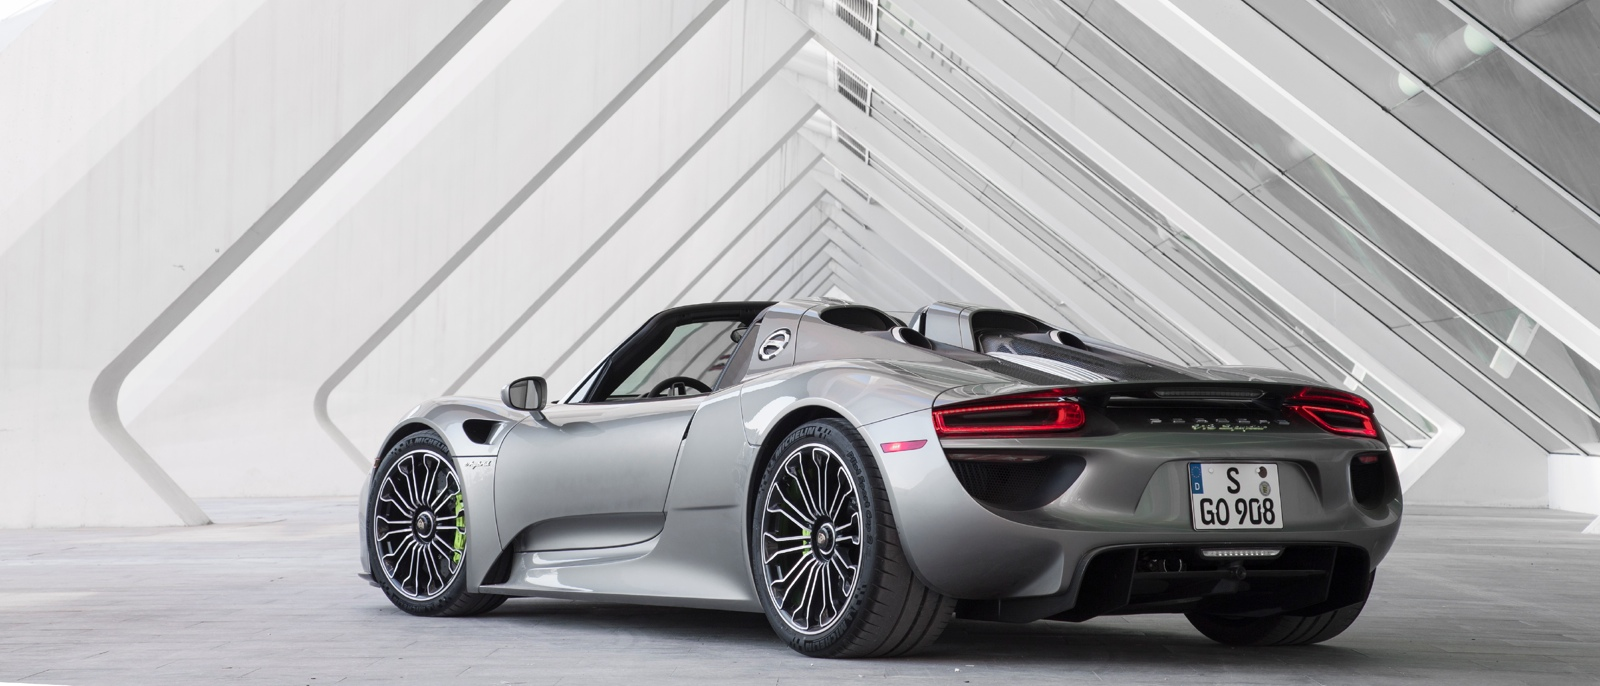 2015 porsche 918 spyder porsche orland park. Black Bedroom Furniture Sets. Home Design Ideas